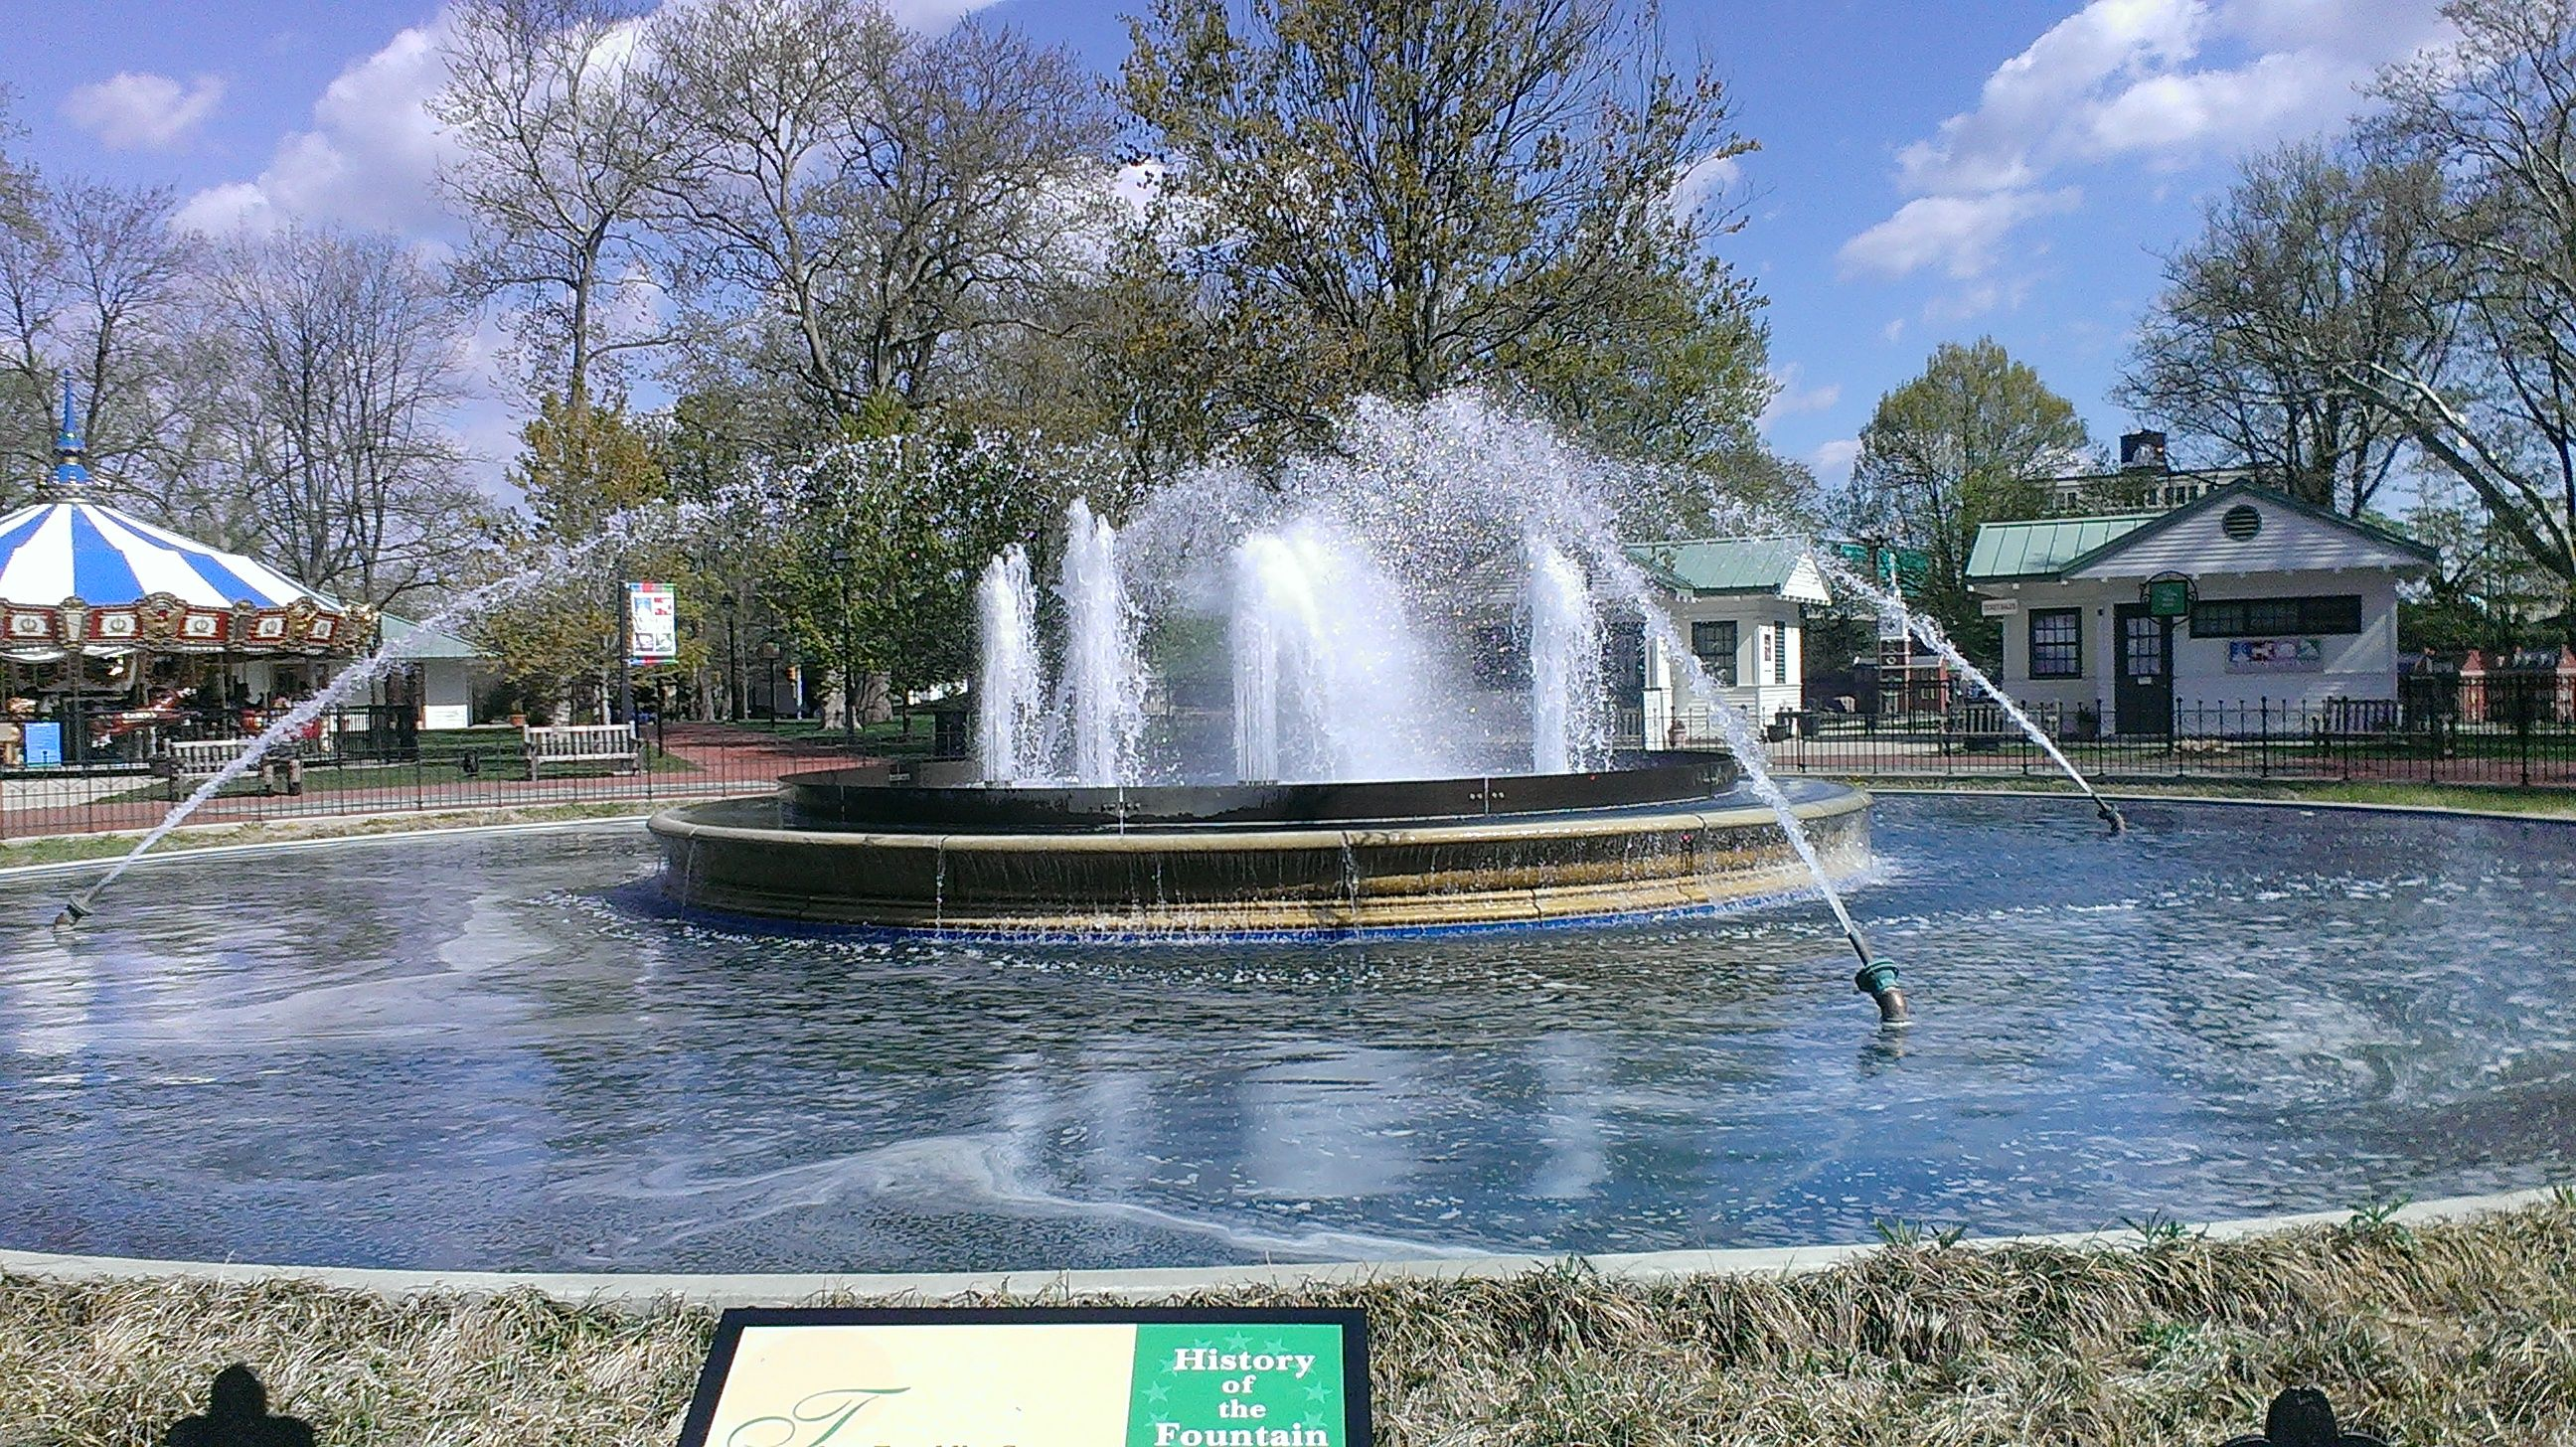 Franklin square fountain 6th and race streets of